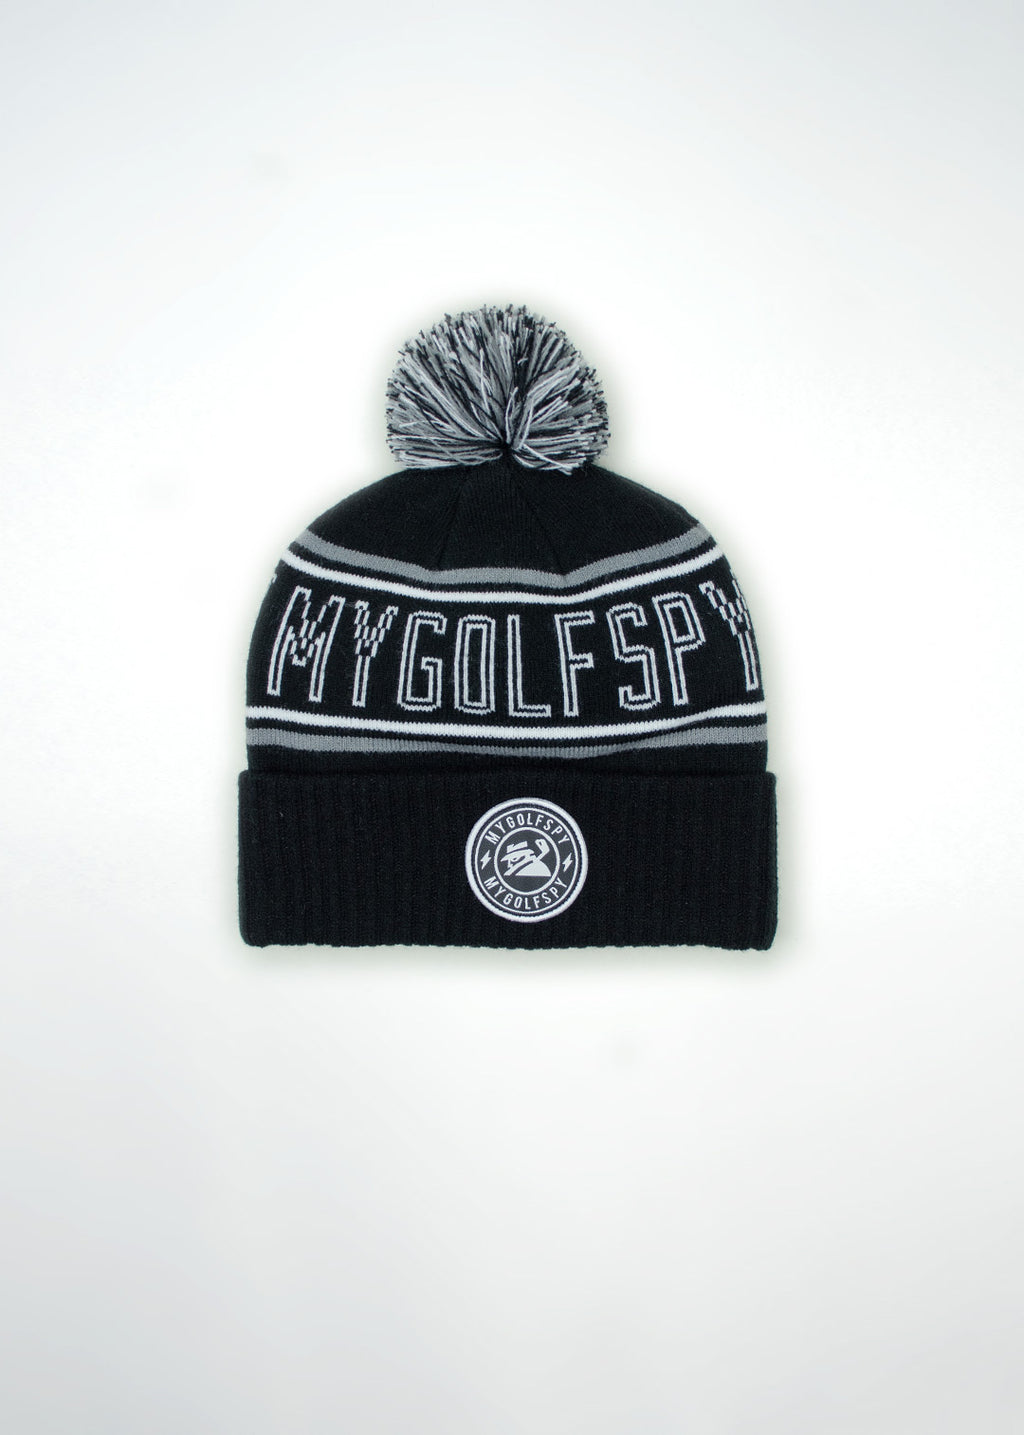 MyGolfSpy Winter Hat - Black